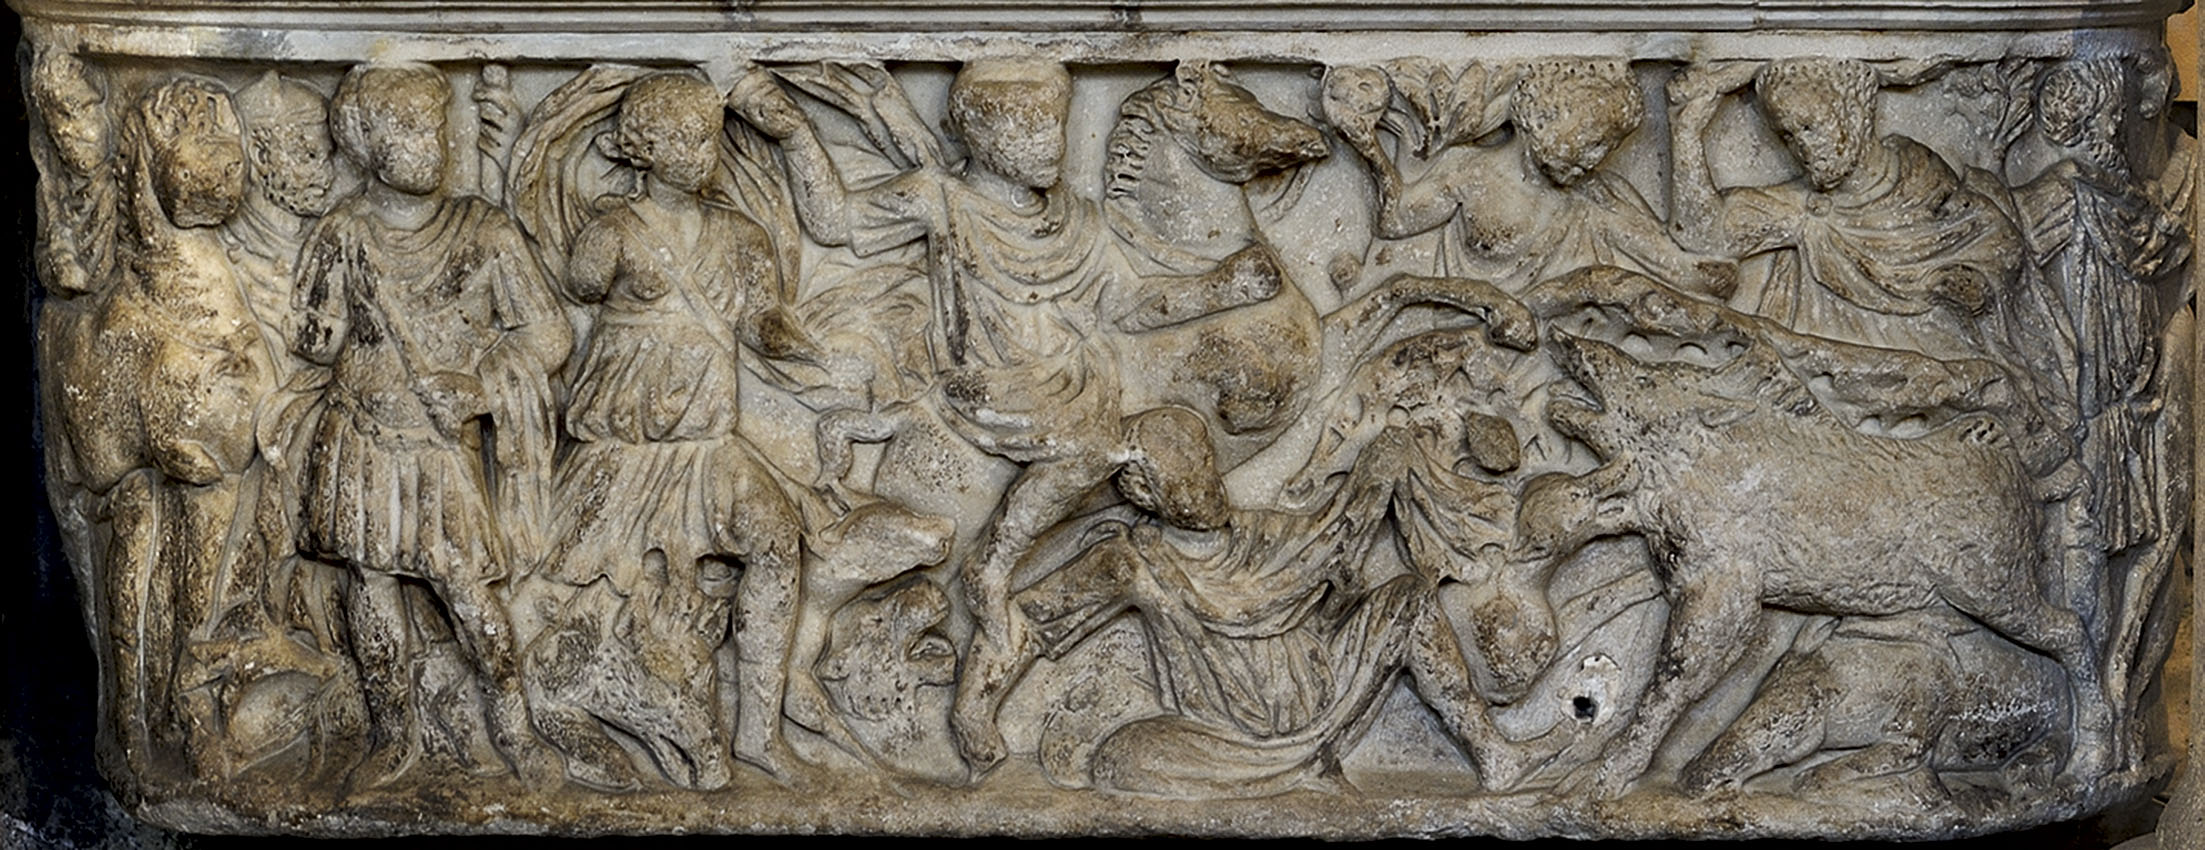 A lenos-shaped sarcophagus with a scene of the Calydonian Hunt. The frontal side. Marble. Marble. 4th cent. CE. Florence, Baptistery